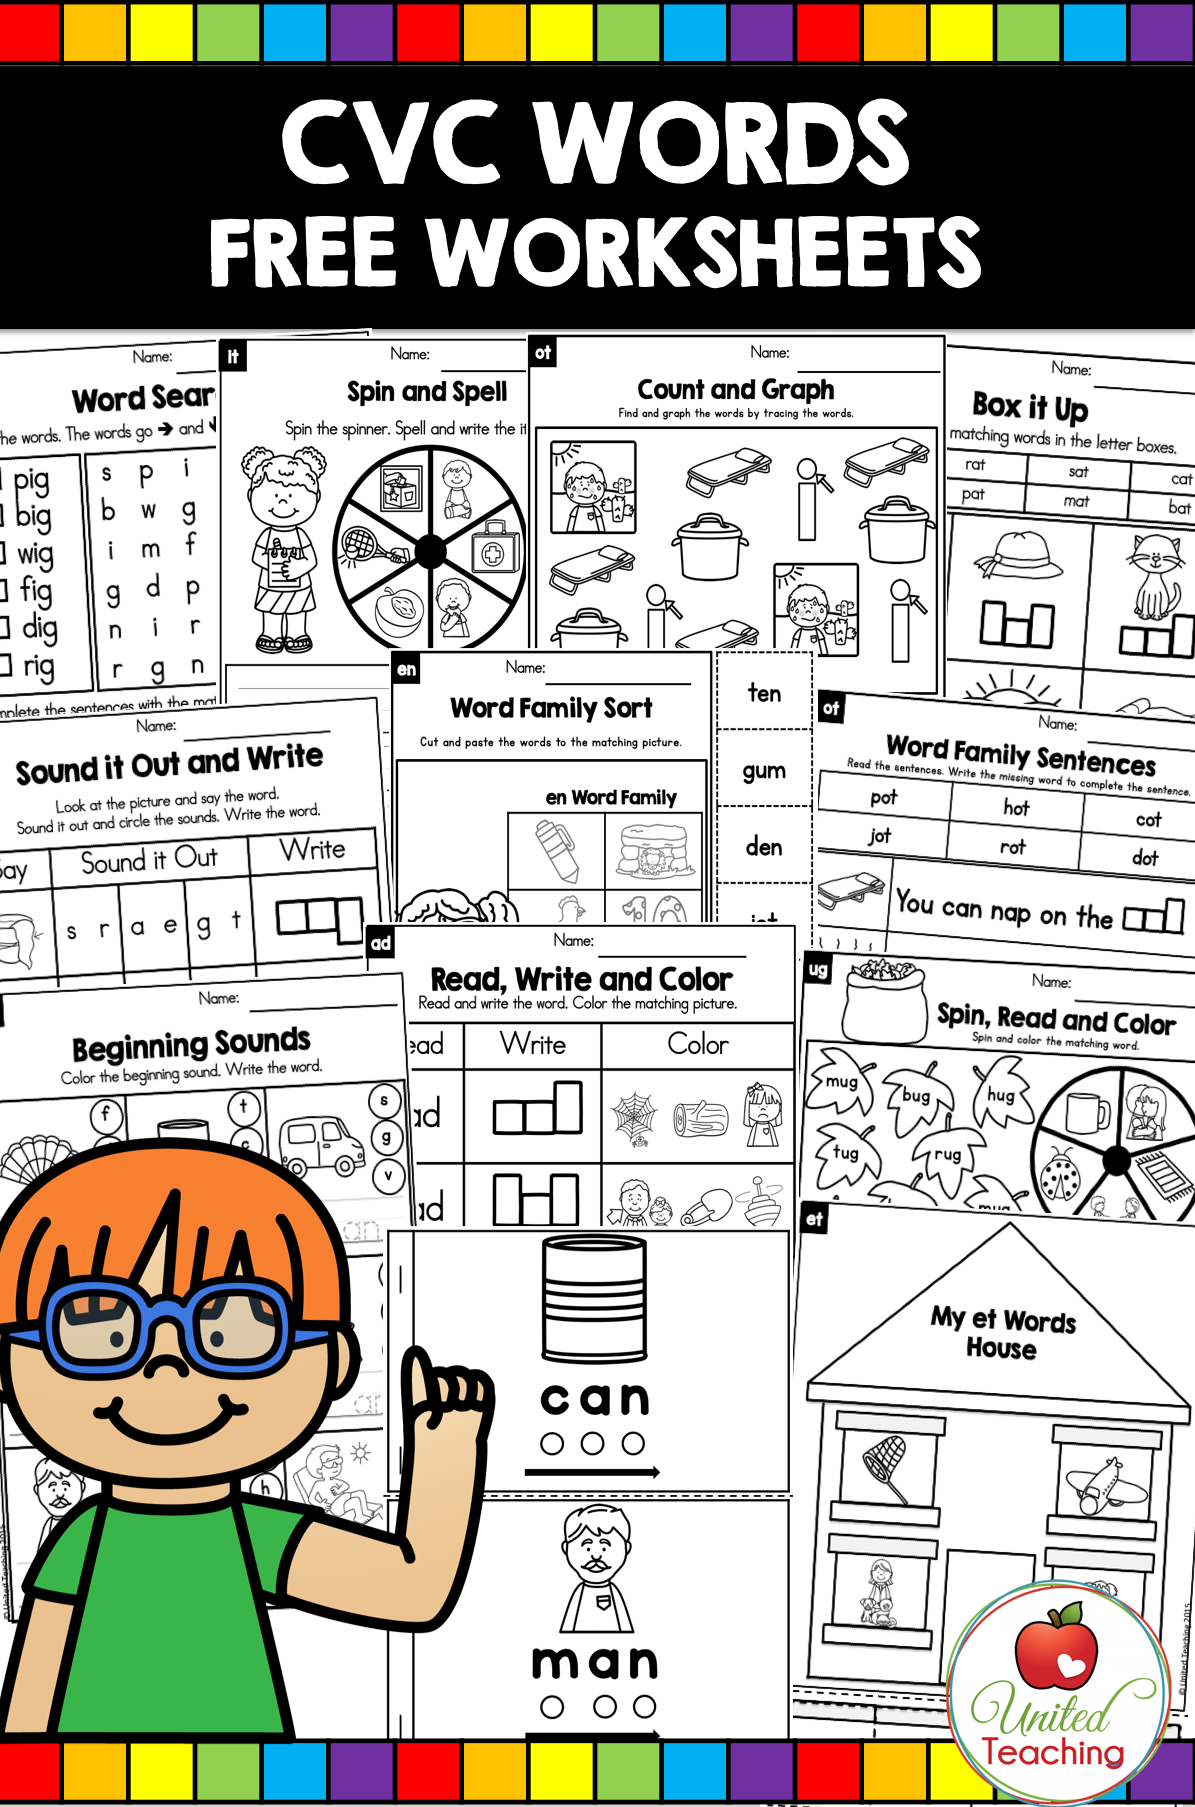 Cvc Words Worksheets Free Cvc Cvcwords Free Words